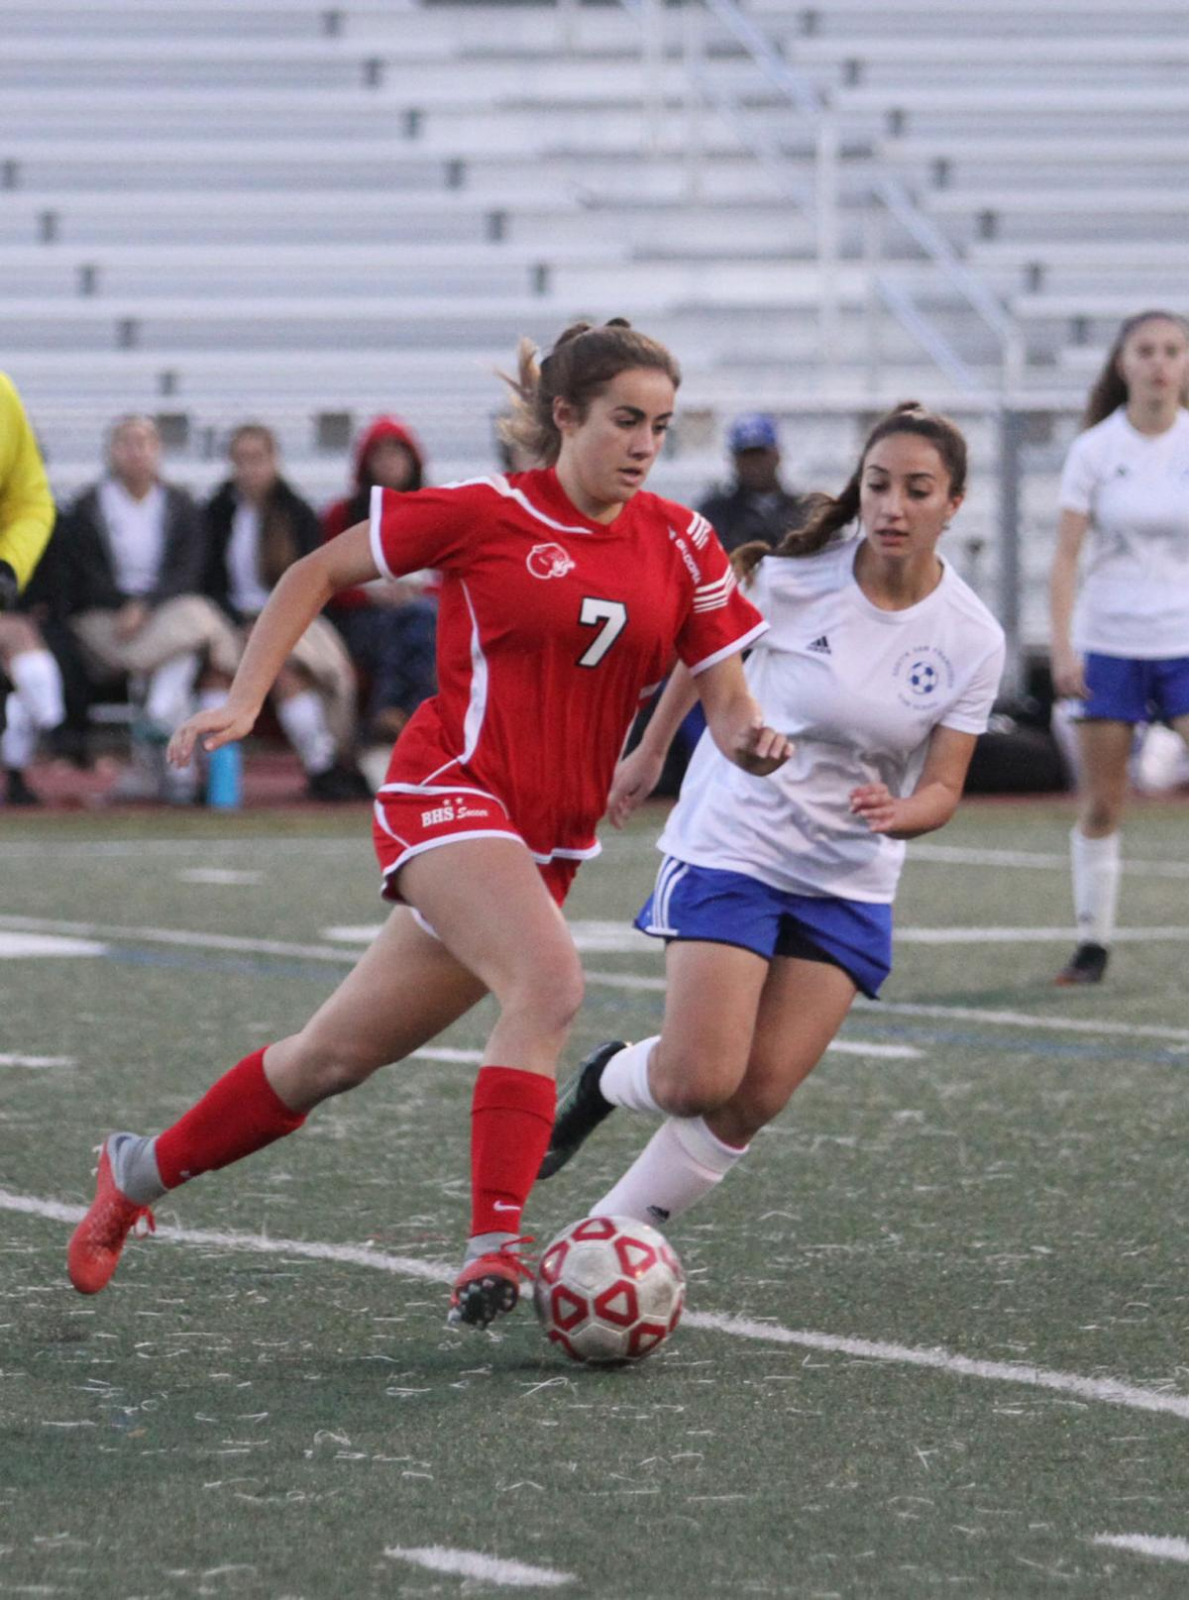 Panthers too much for SSF